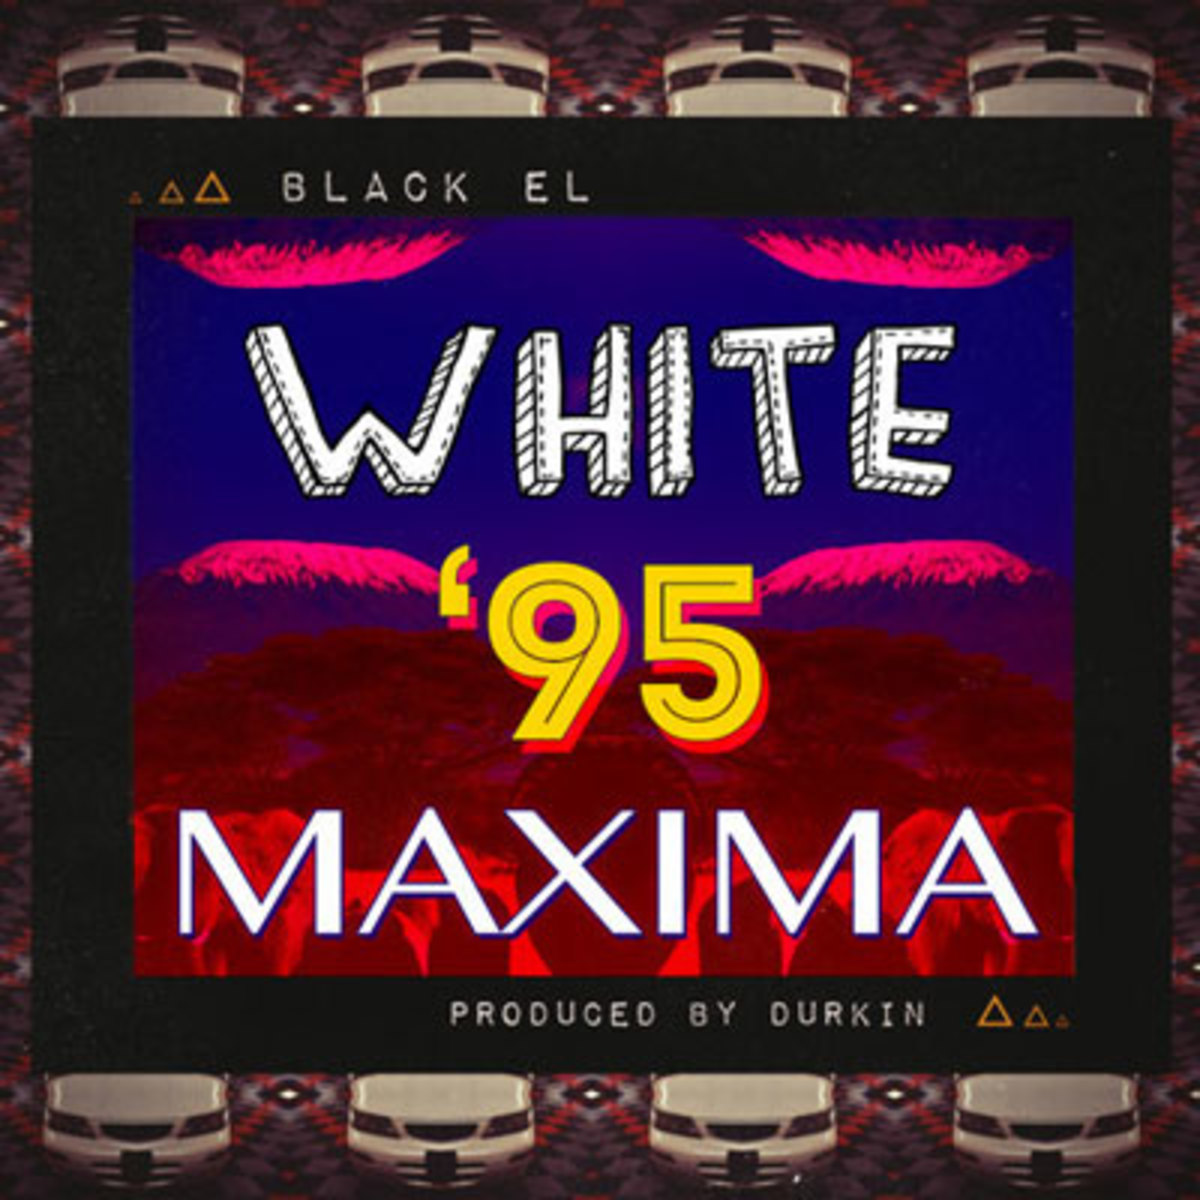 blackel-whitemaxima95.jpg